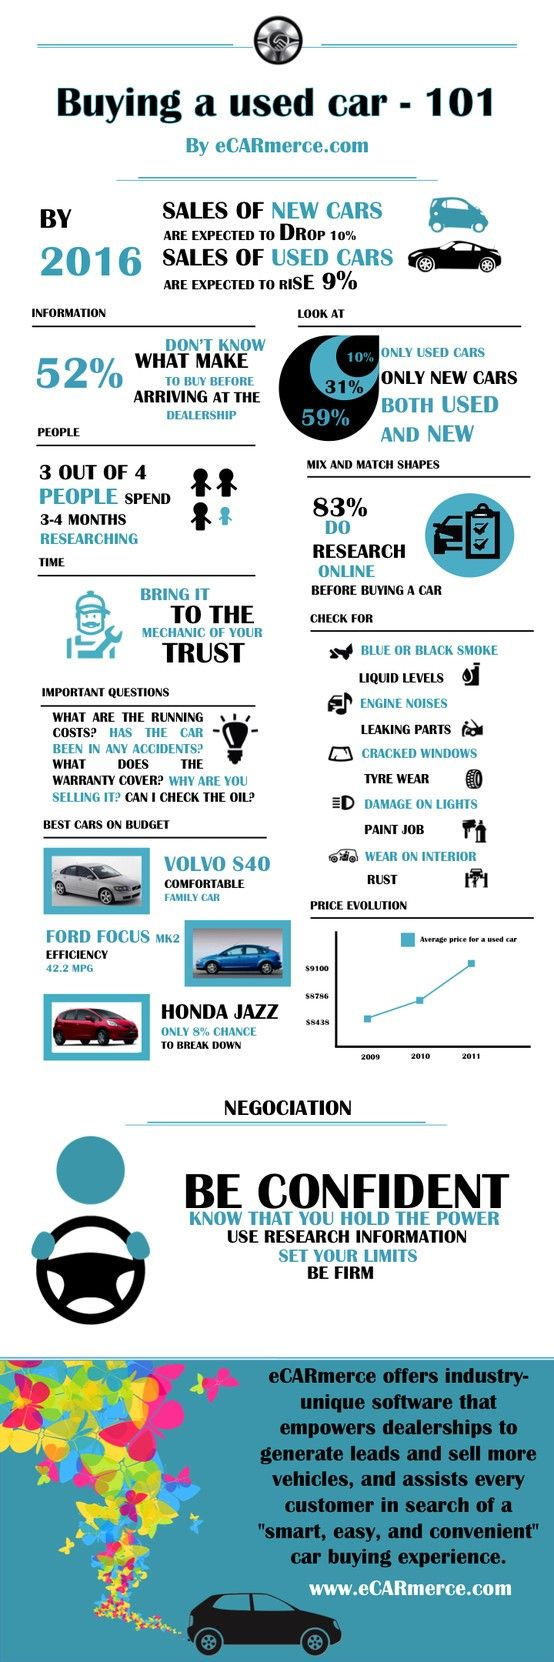 Infographic how to buy a used car tips on how to get a good